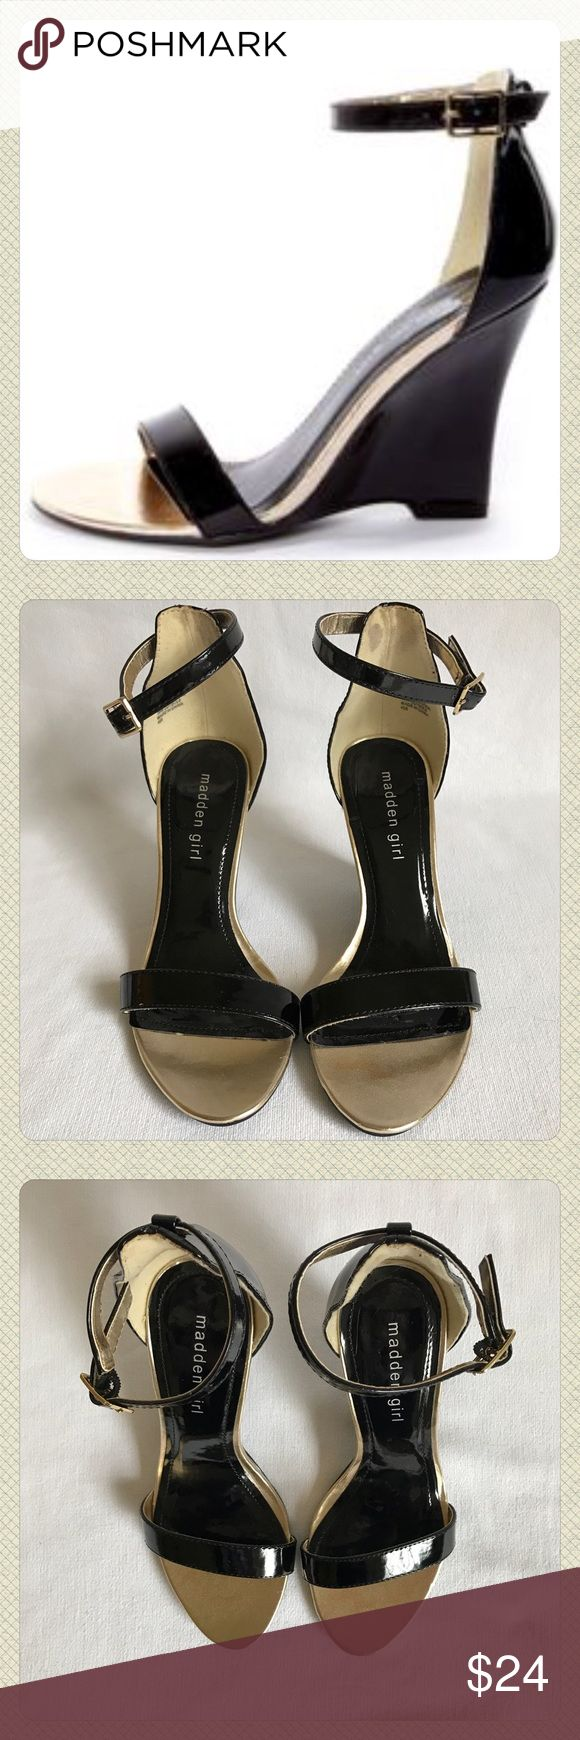 """Madden Girl Black & Gold Strappy Sandals, Sz 7.5 Black with gold accents, wedge sandals, size 7.5. In very good used condition. Heel is about 4"""". There are spots inside the back of the sandal. There is slight discoloration on the gold toe of the left shoe. You can't see anything when you have the shoes on. They are really cute shoes.  Please feel free to ask any questions or use the offer button to make an offer. Everything is negotiable! Madden Girl Shoes"""